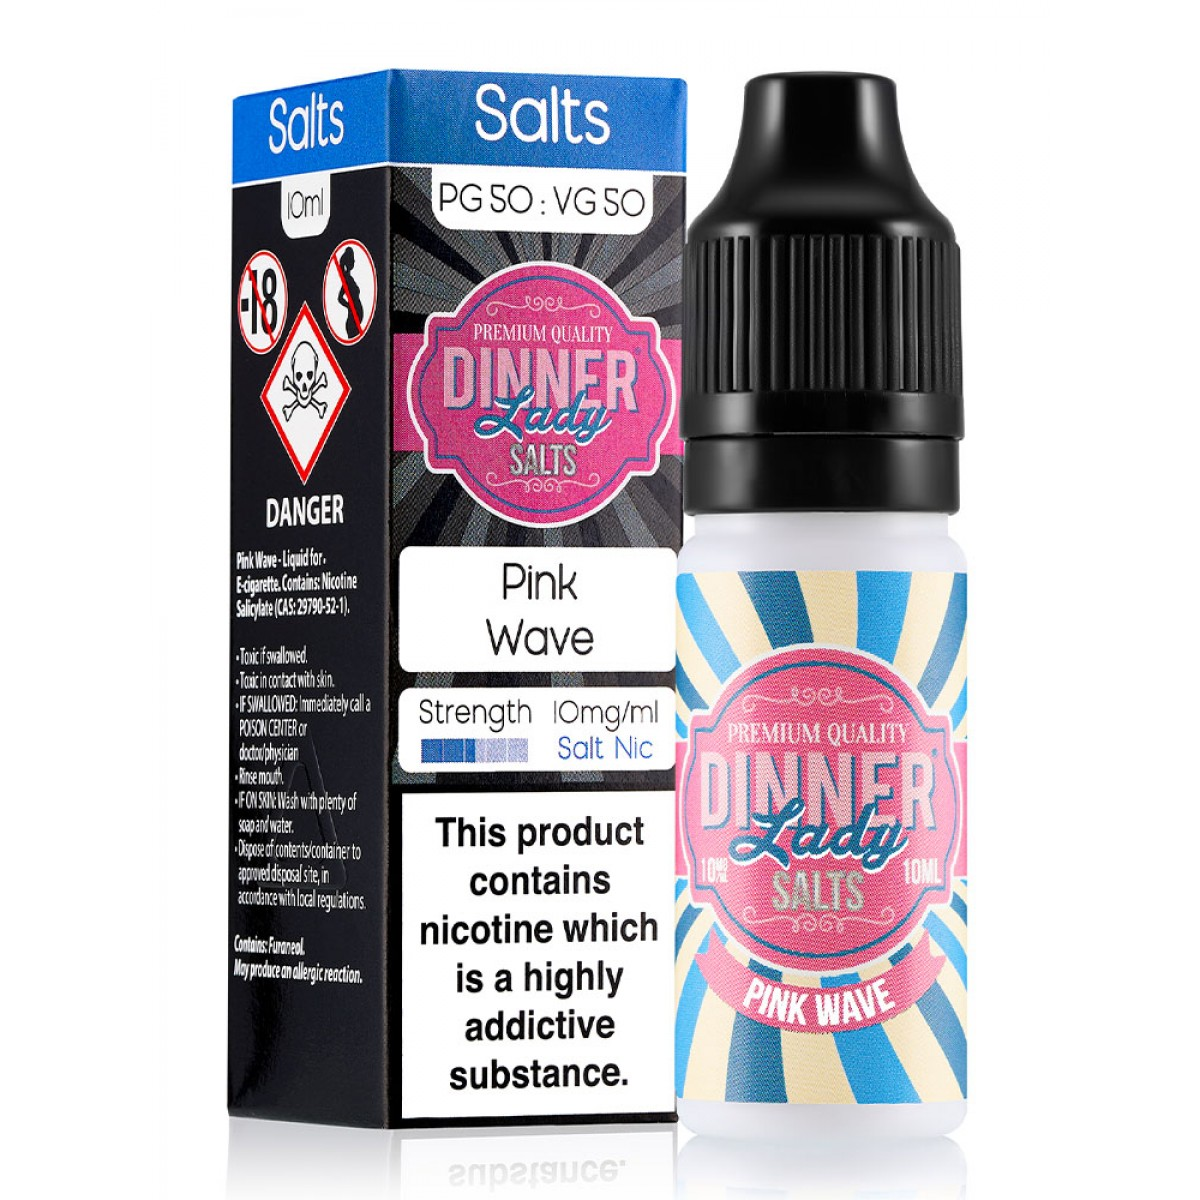 PINK WAVE BY DINNER LADY SALTS